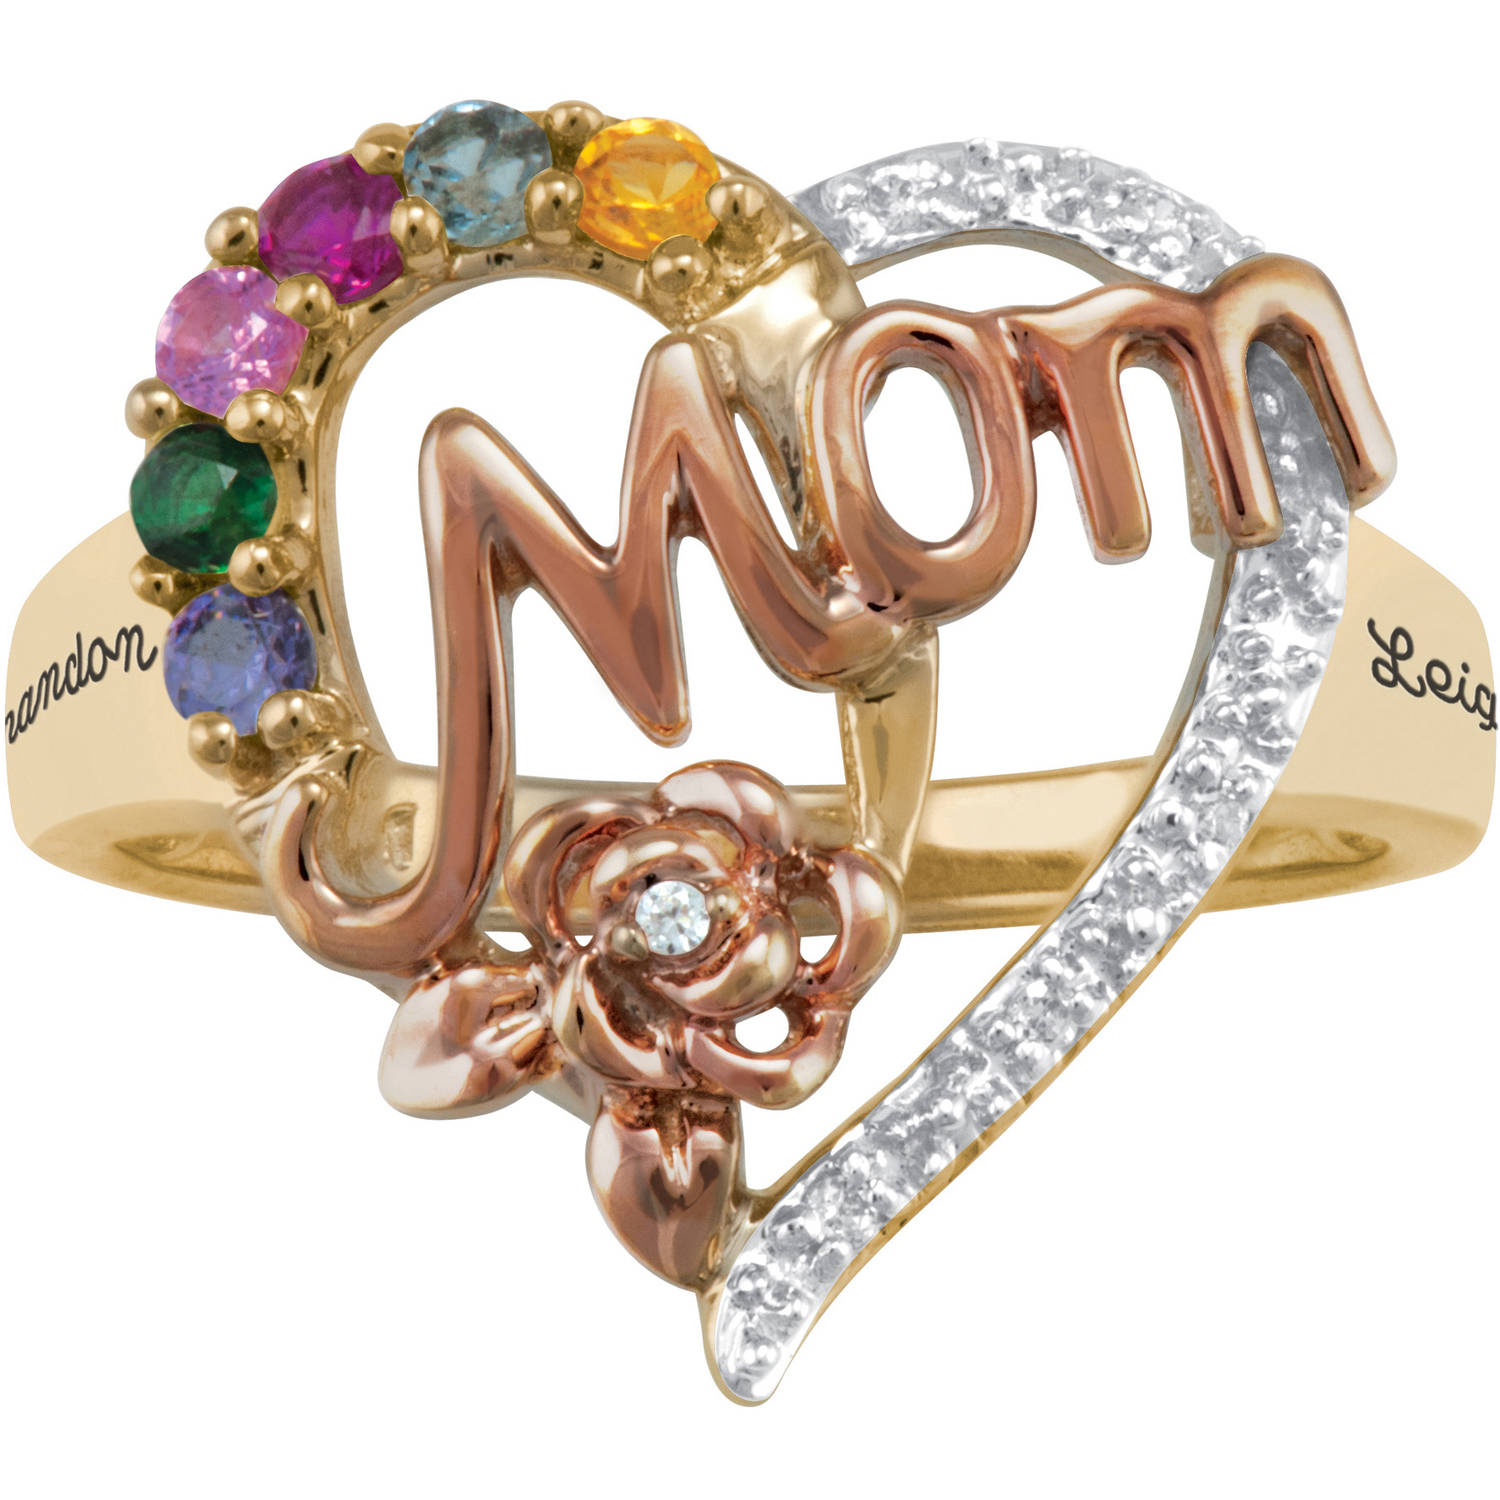 Personalized Keepsake Mom's Blossom Ring